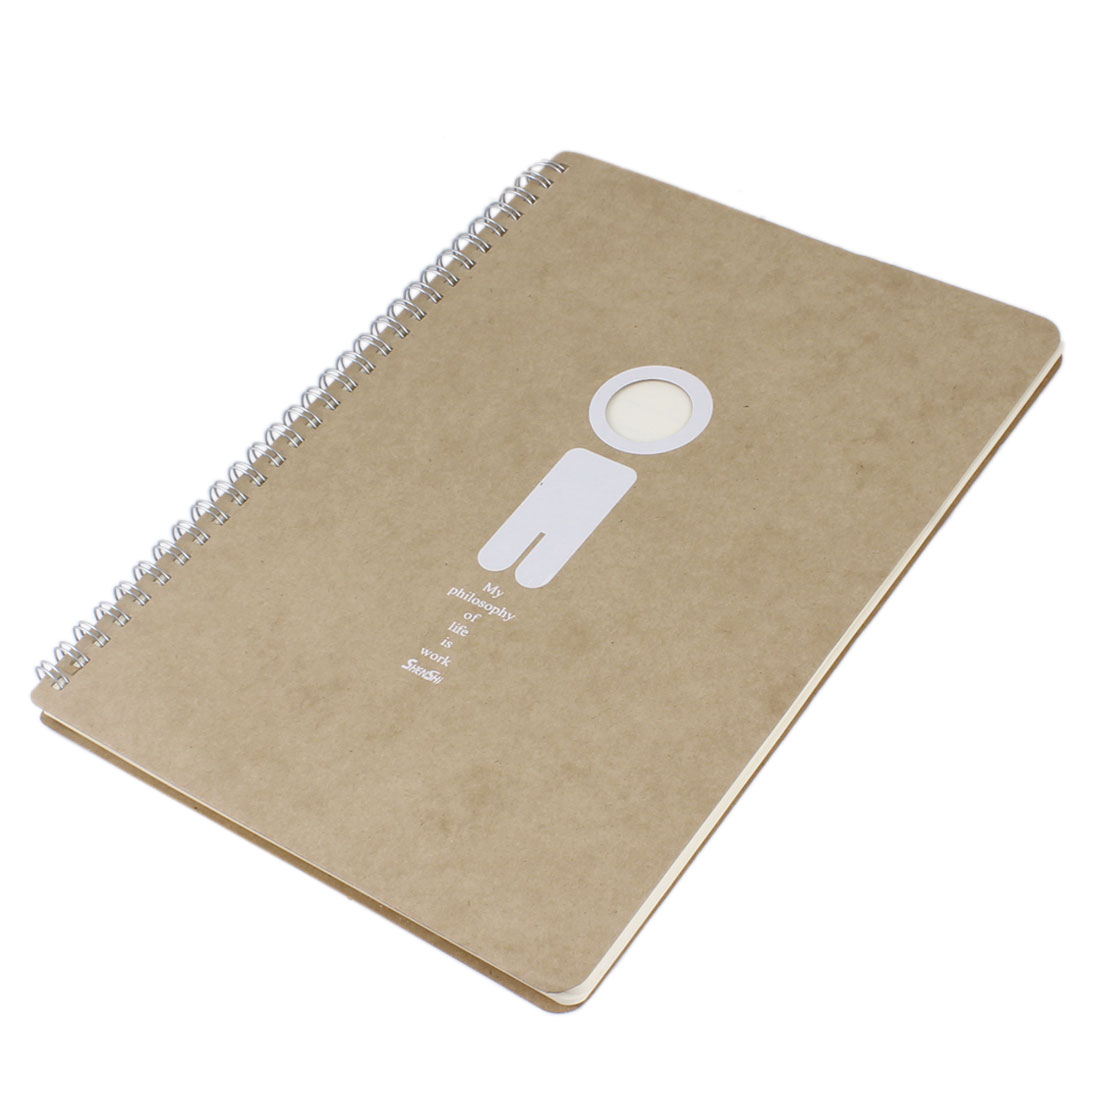 175mm x 252mm Beige Encouraged Sentence Print Paper Cover Ring Binder Notebook